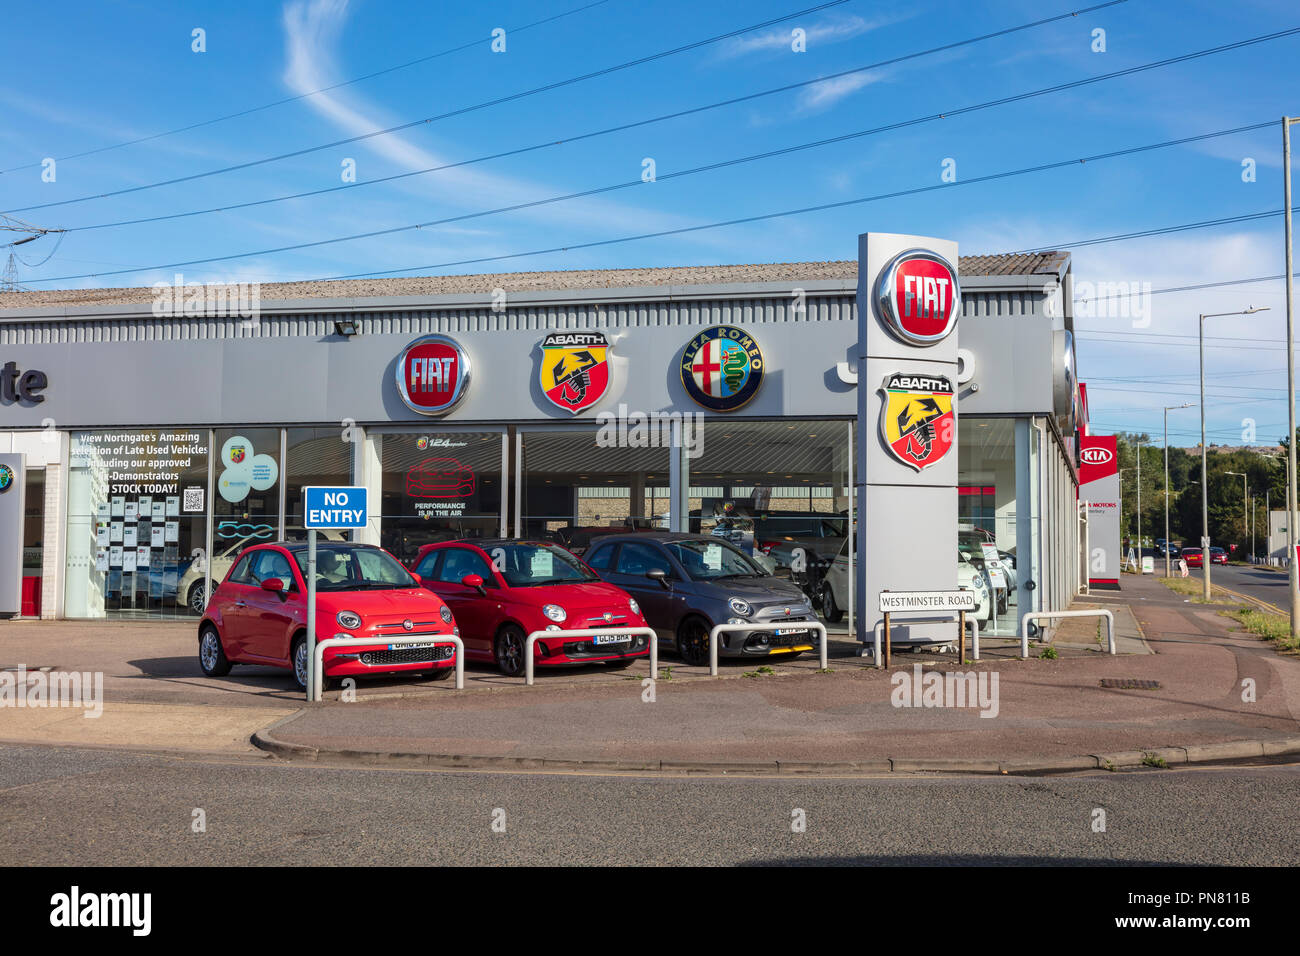 Fiat dealership in Canterbury, Kent, UK - Stock Image